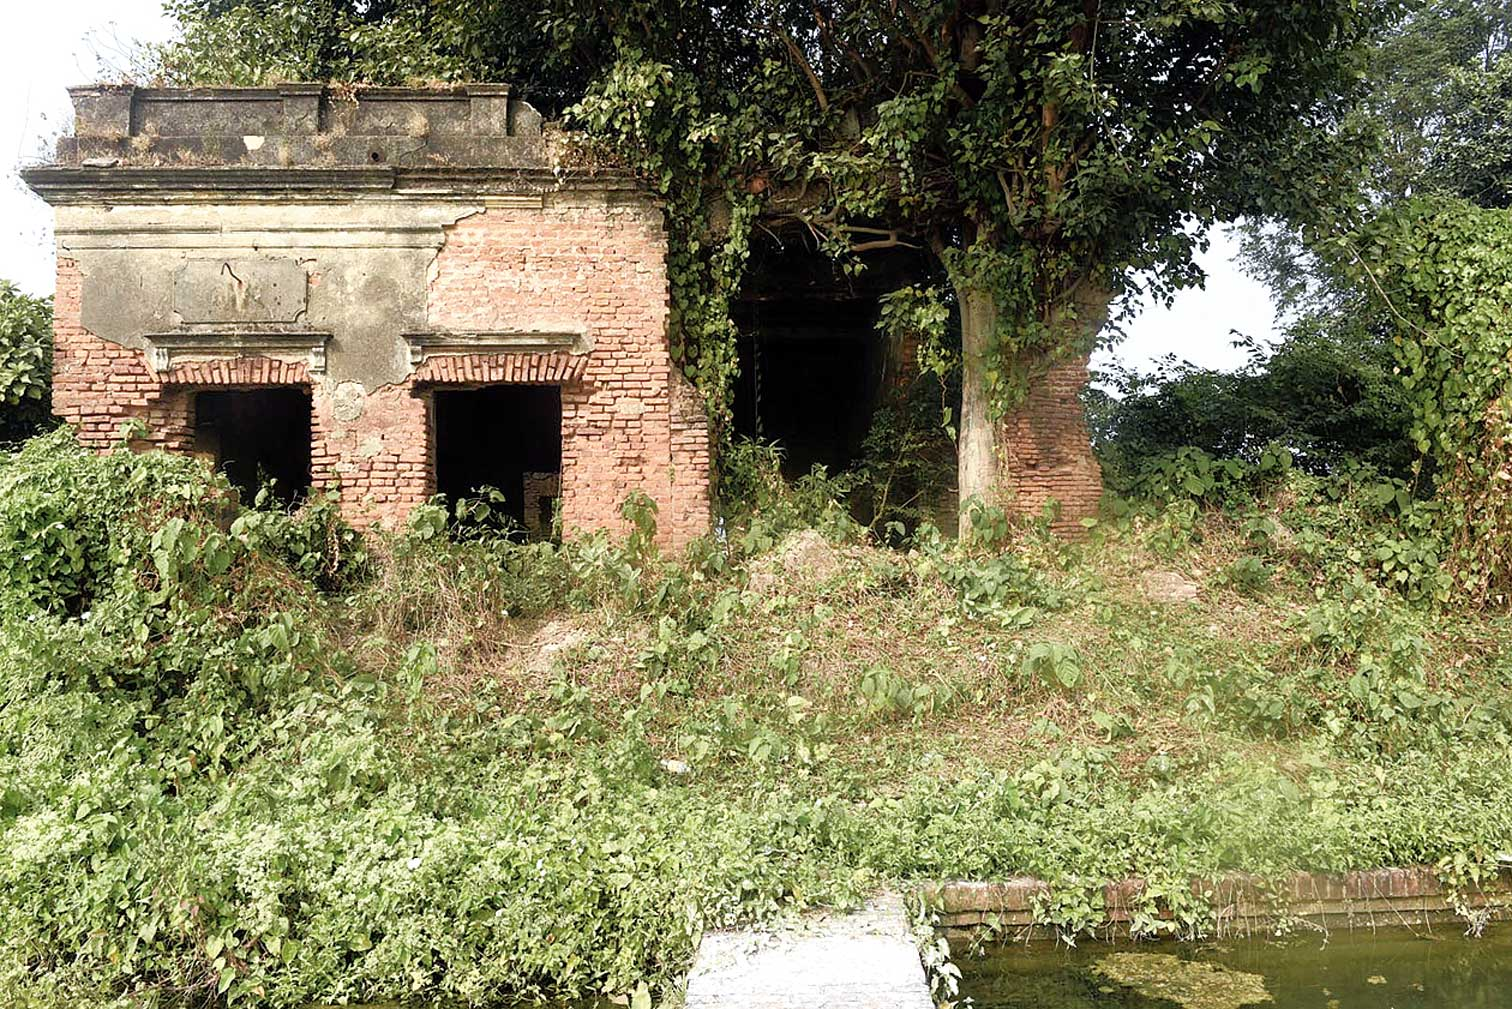 Aldeen House in ruins. Many residents of Serampore admit to being unaware of the location of the building, let alone its significance.